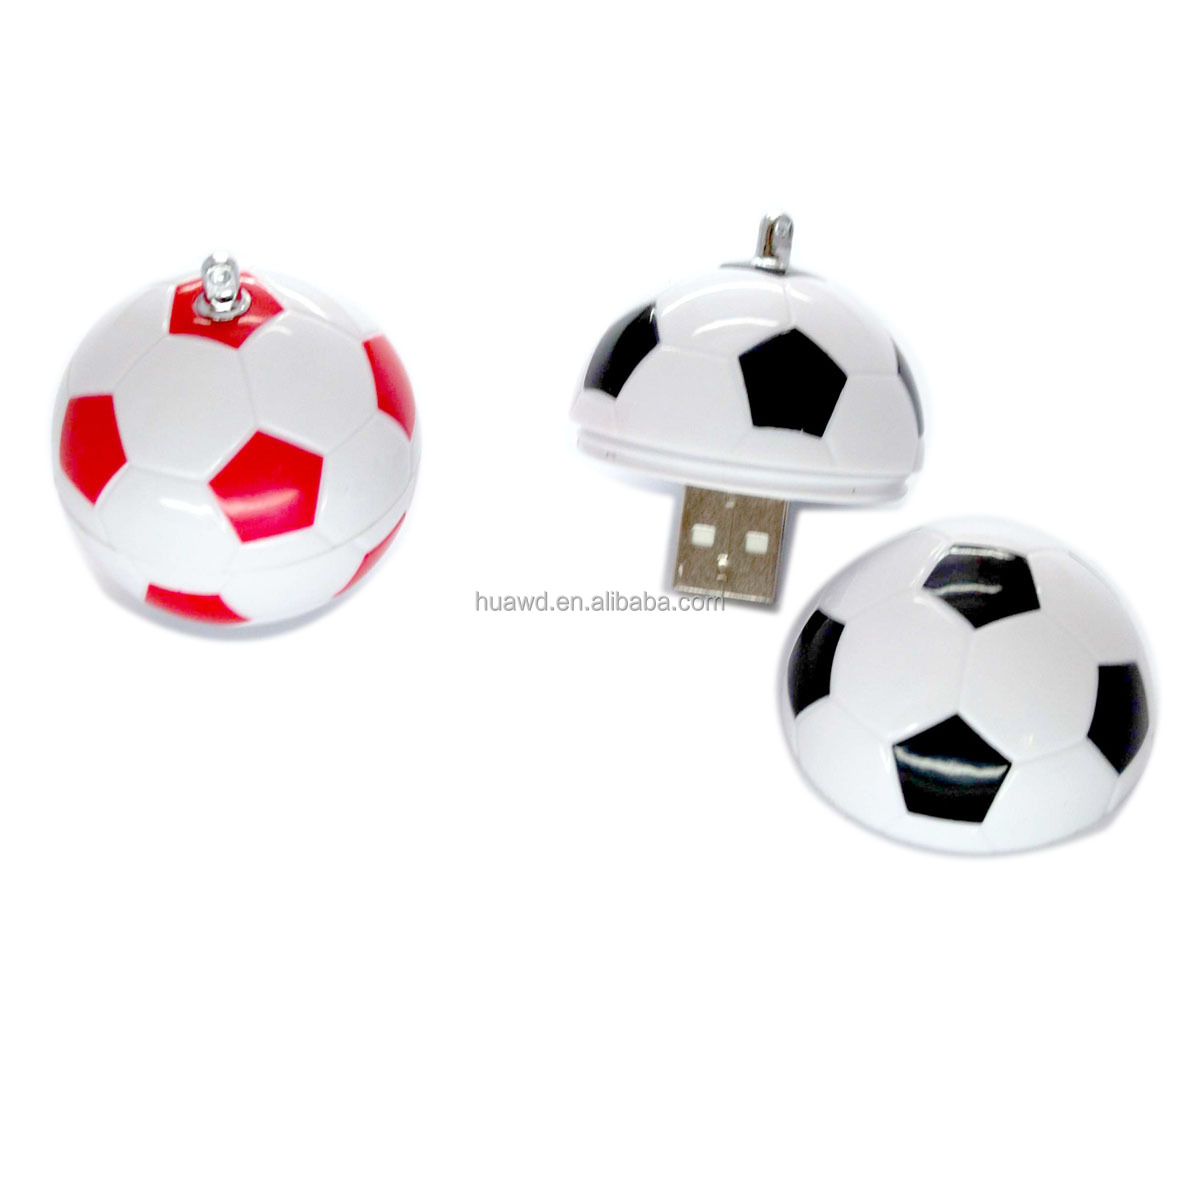 2014 New style football promtional gift usb flash drive, portable usb flash drives usb